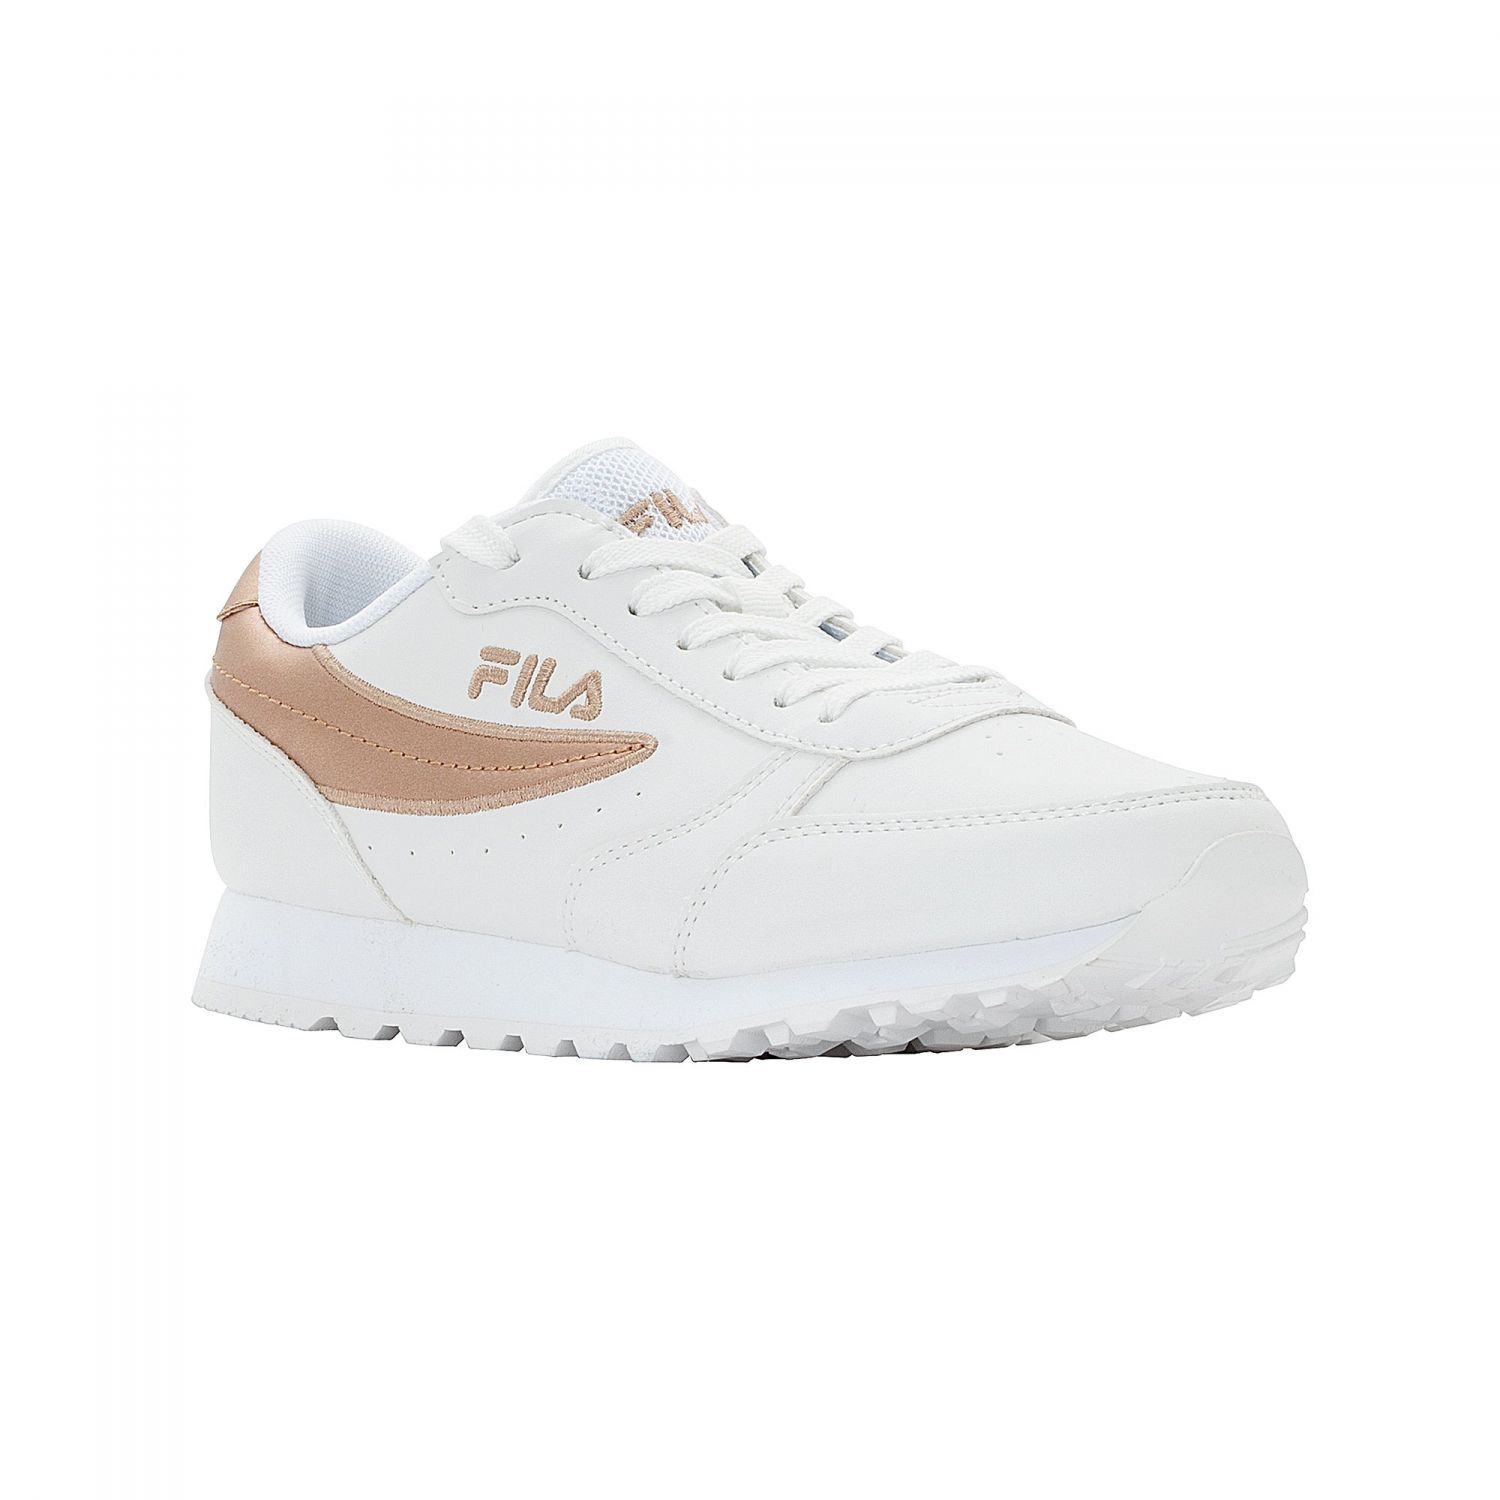 Fila - Orbit P Low Wmn - 00014201599781